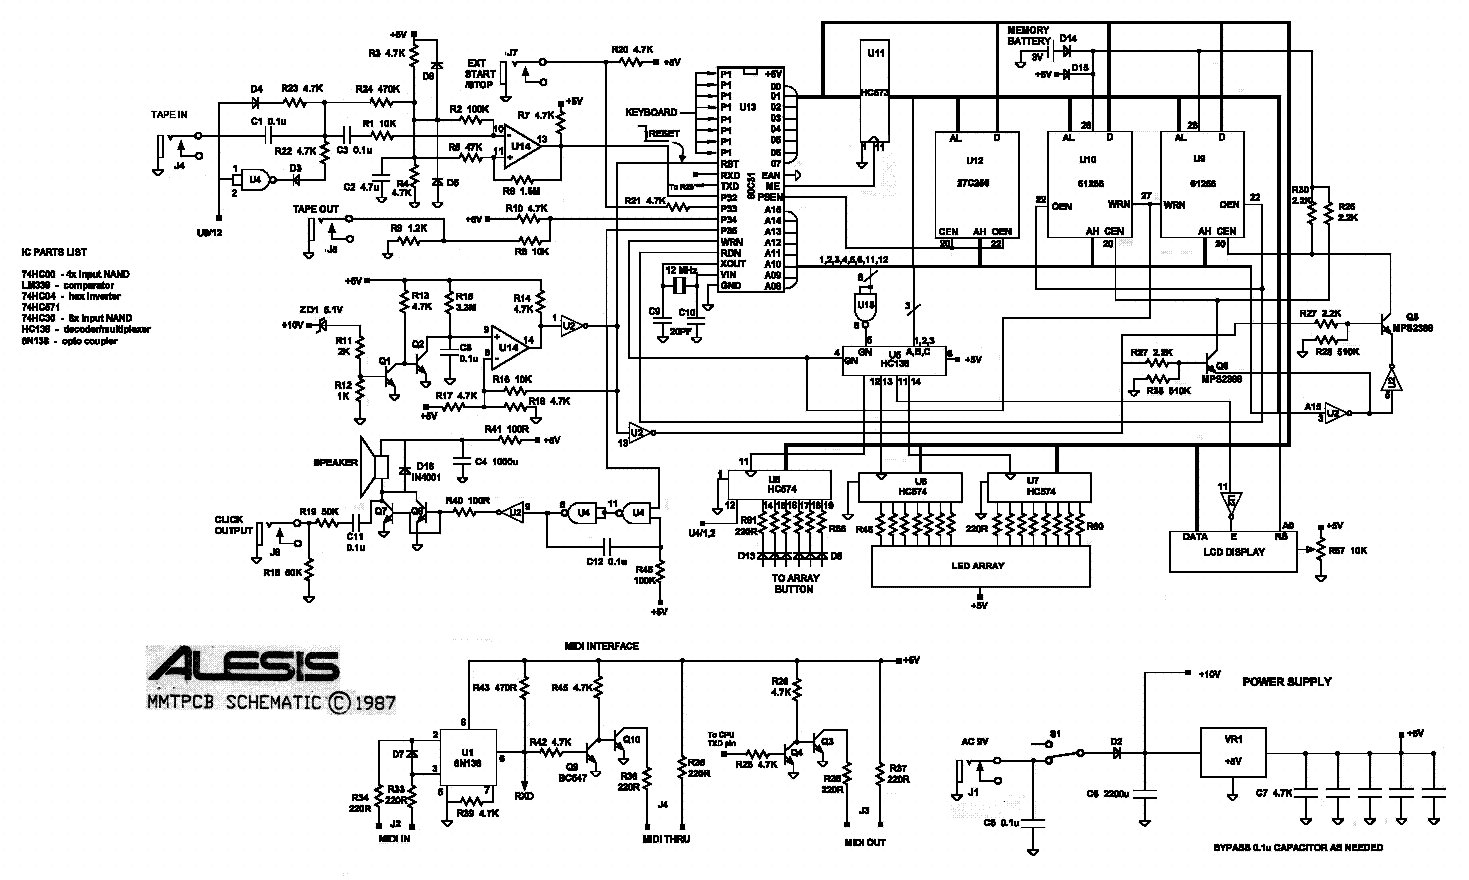 ALESIS MMT8 REV.2 SCHEMATIC Service Manual download